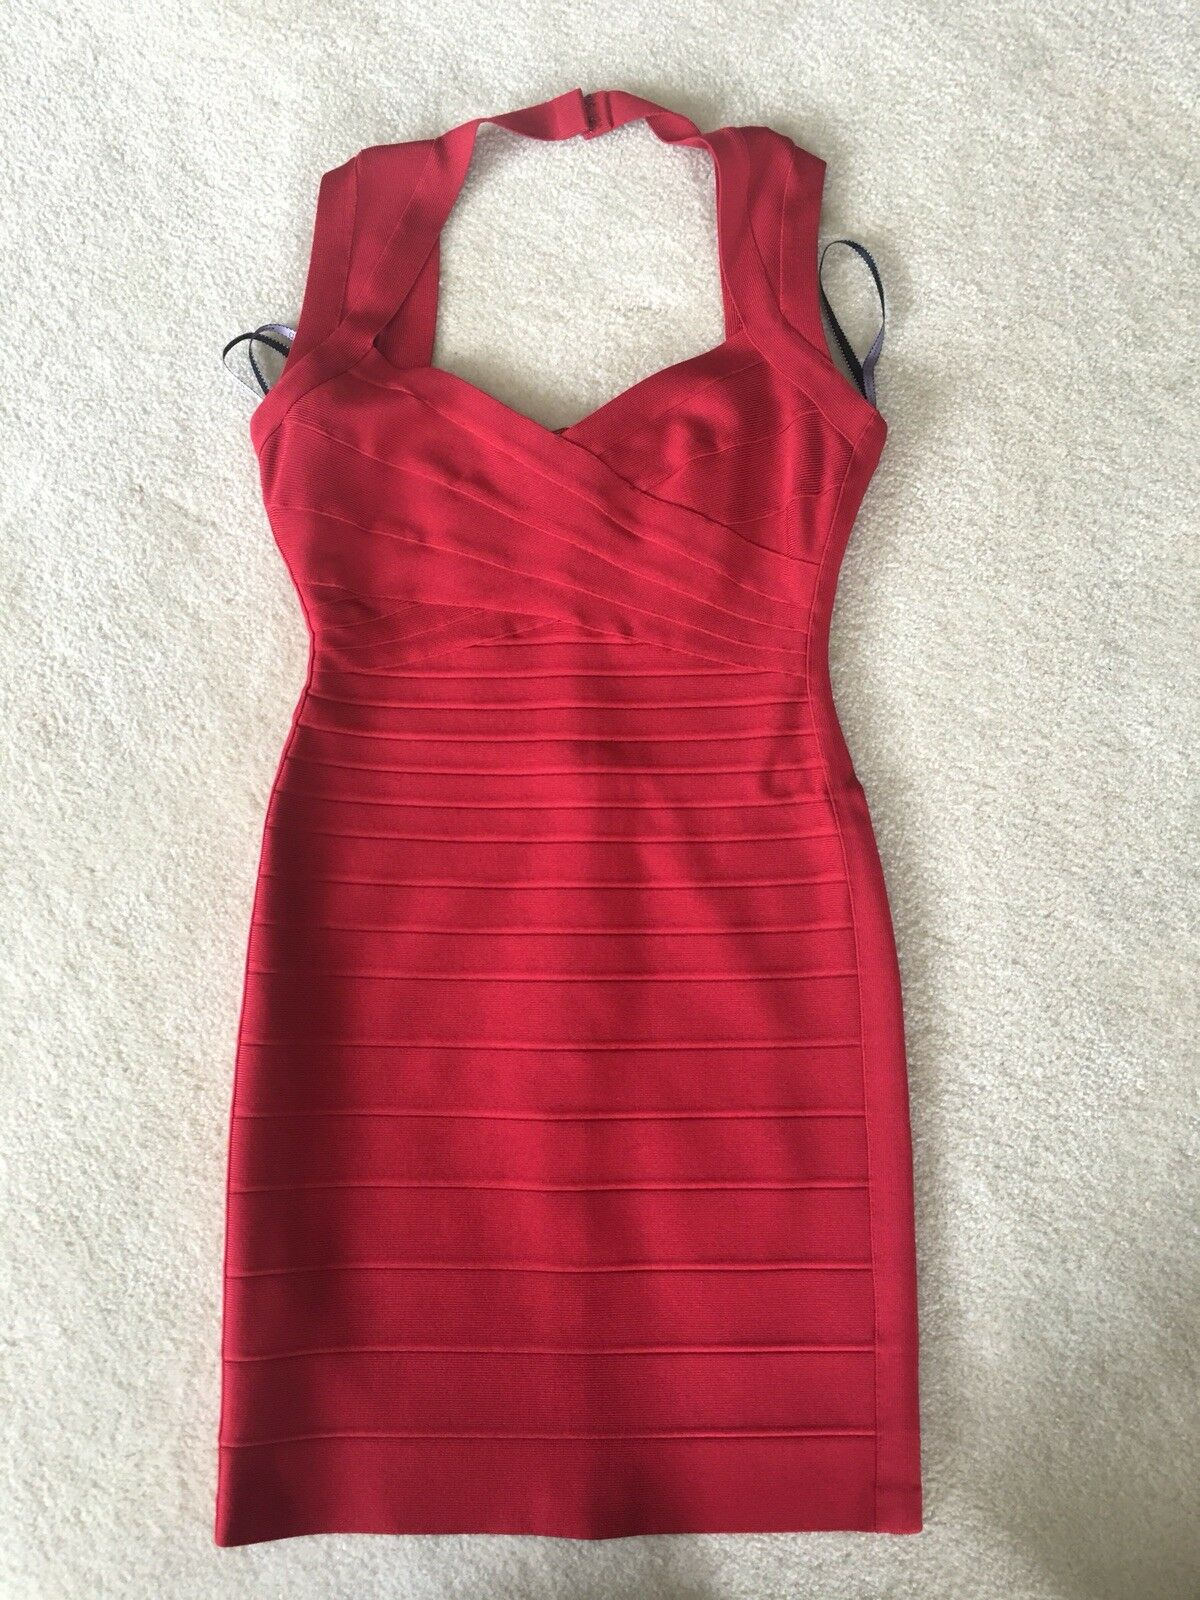 Herve leger dress, size medium